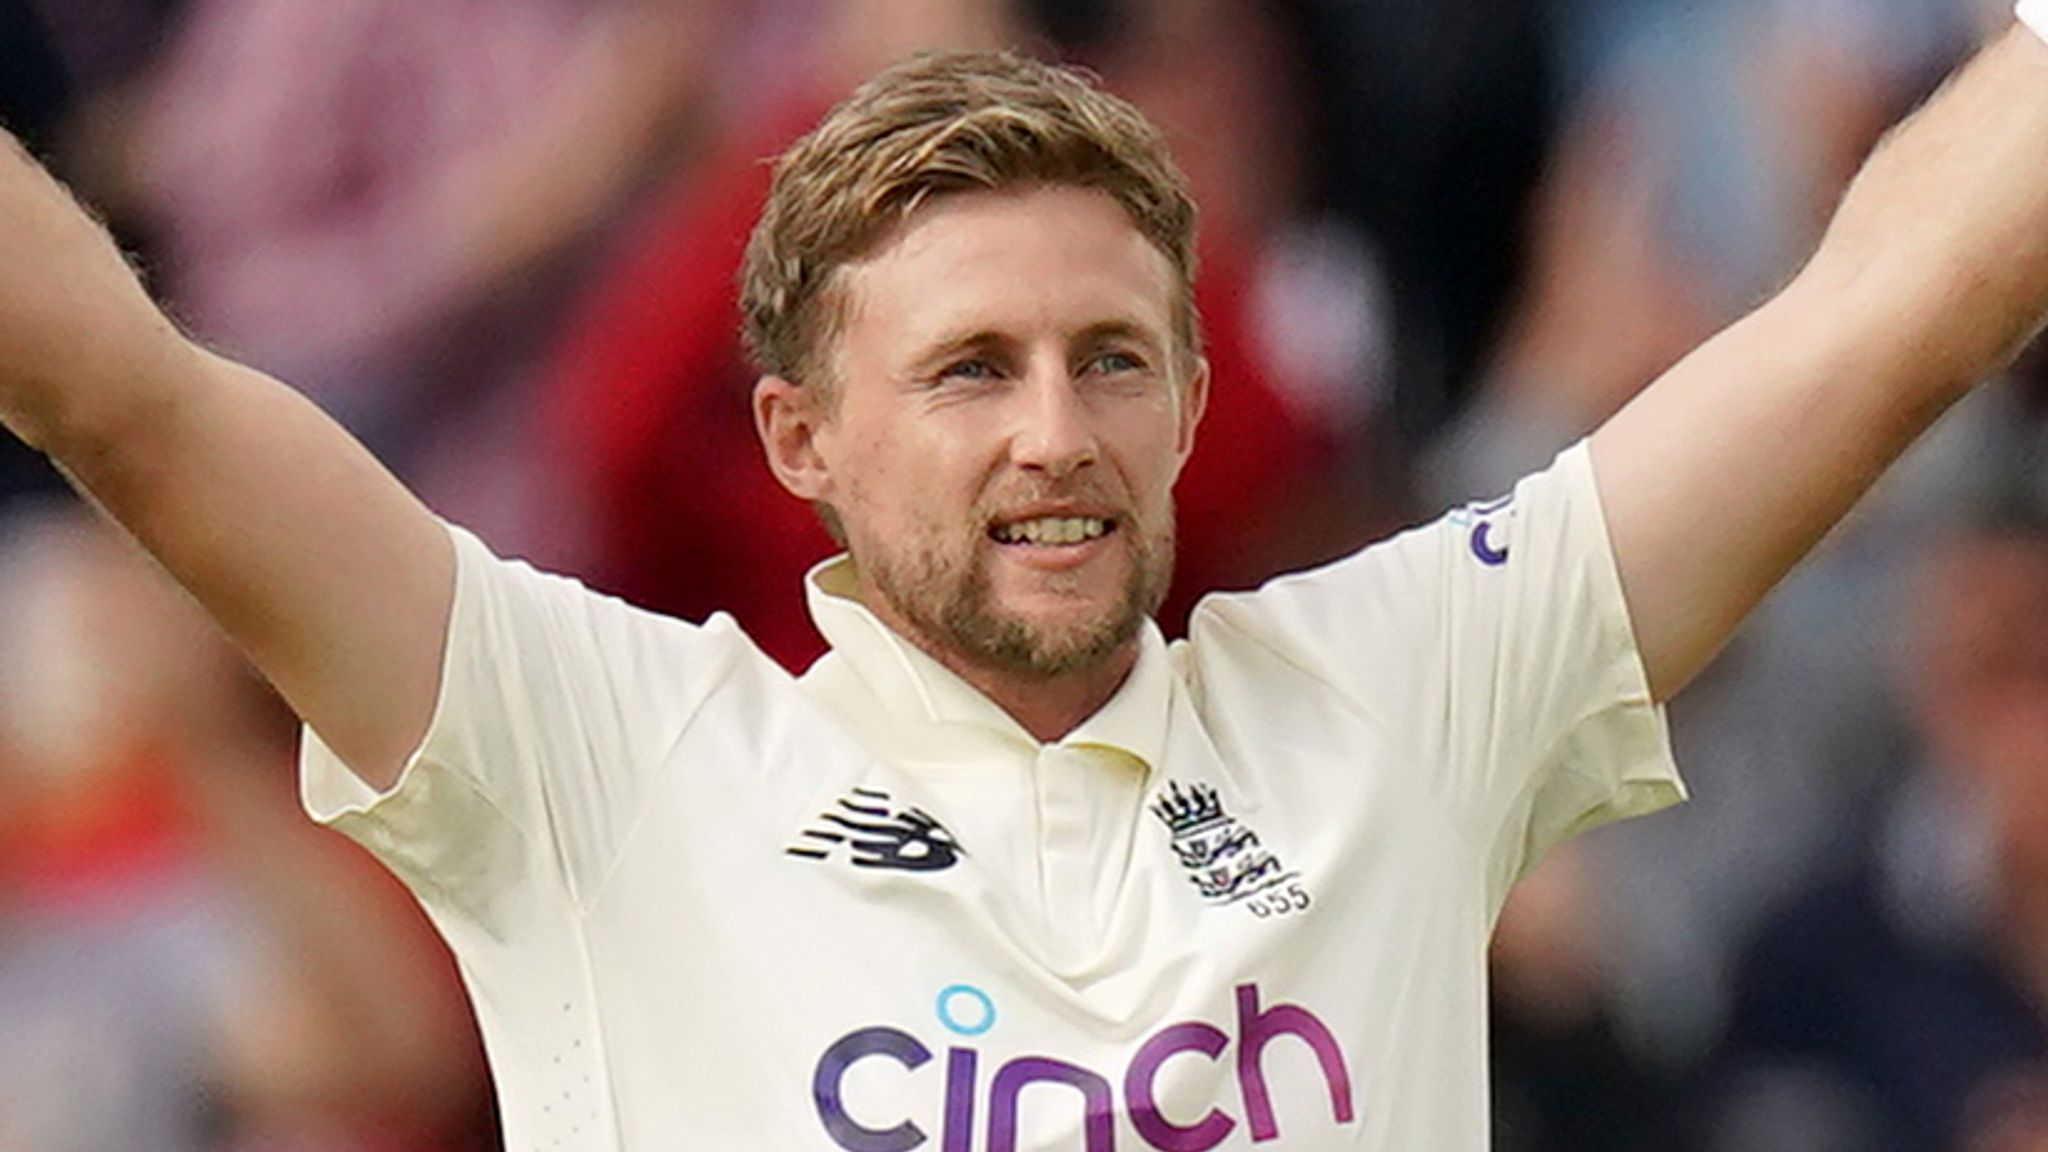 Joe Root's brilliant ton gives England hope but India have edge going into  last day of first Test   Cricket News   Sky Sports